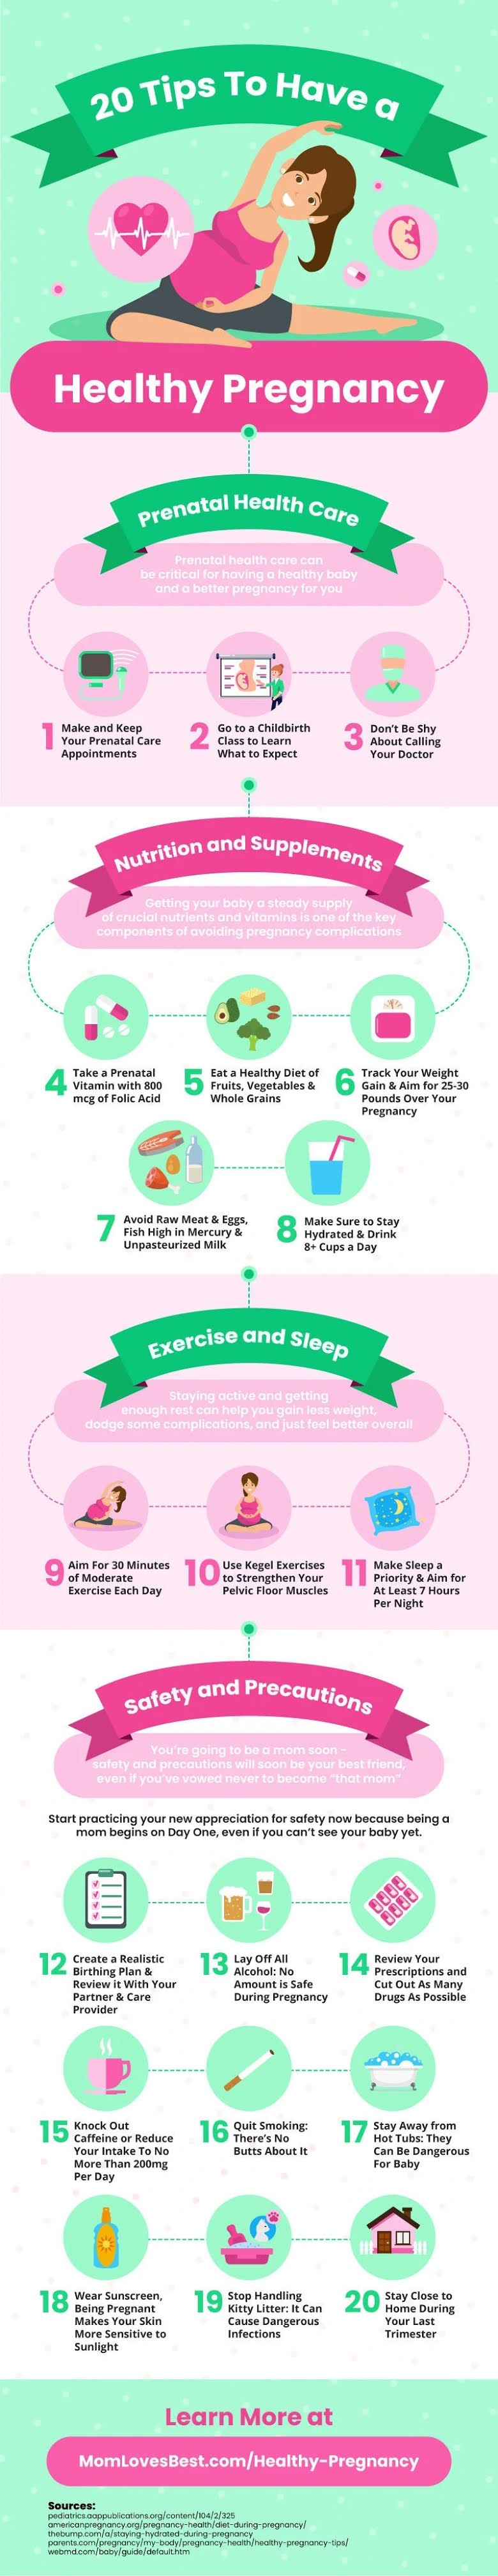 20 Tips To Help You Have a Healthy Pregnancy #infographic